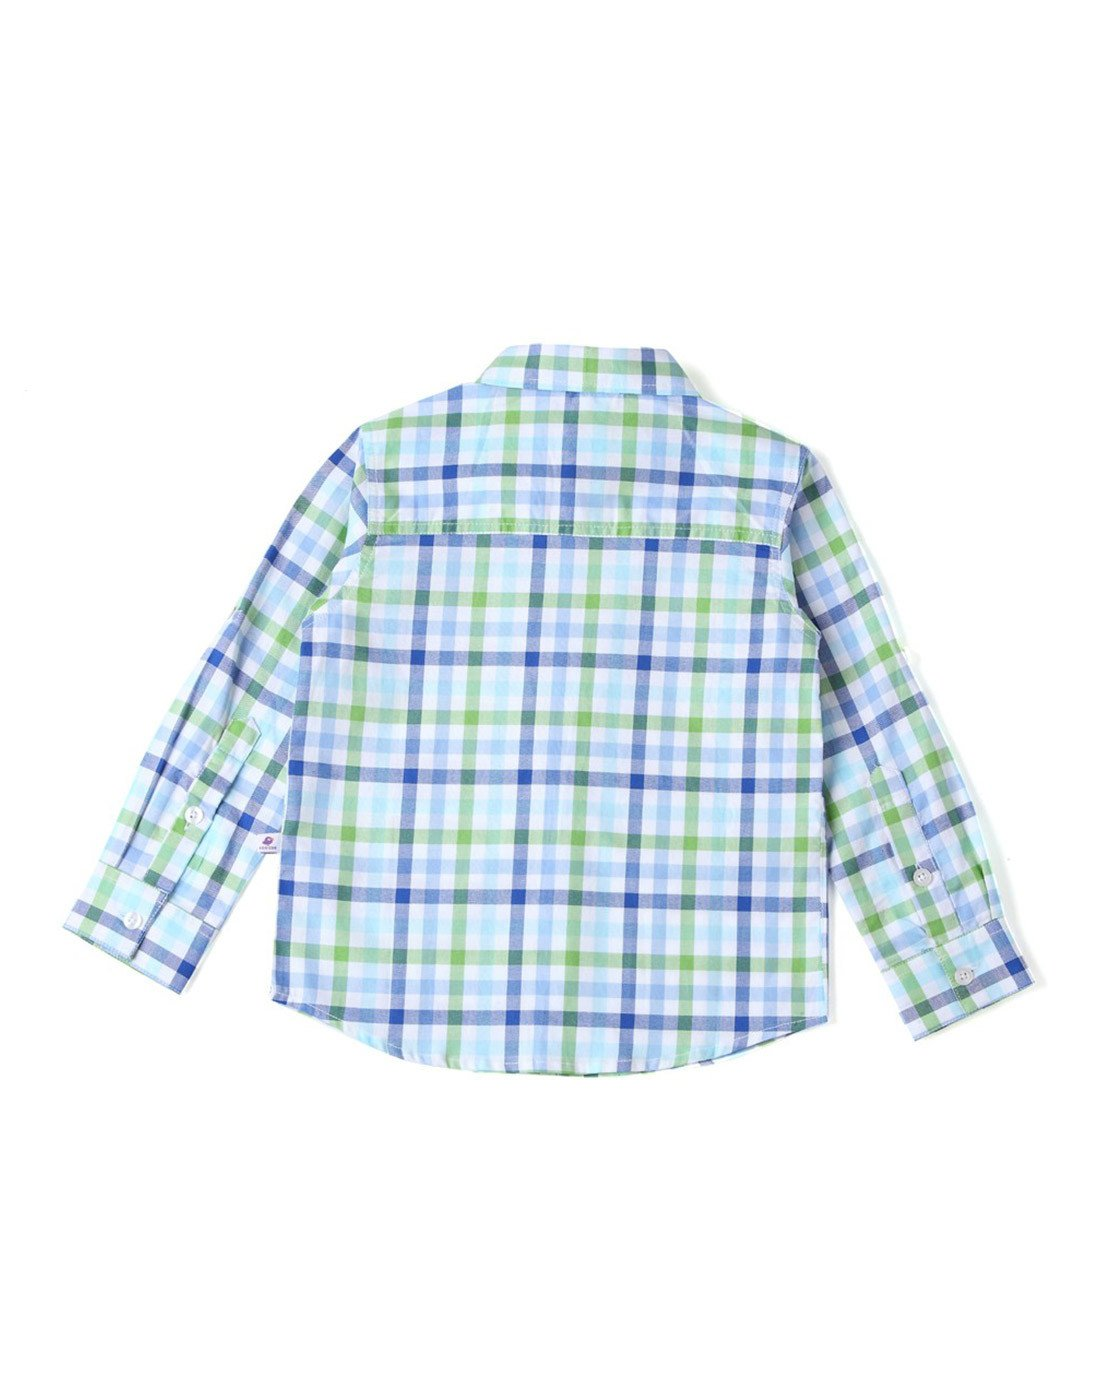 The Nihal - Green Blue Checks Roll-Up Shirt